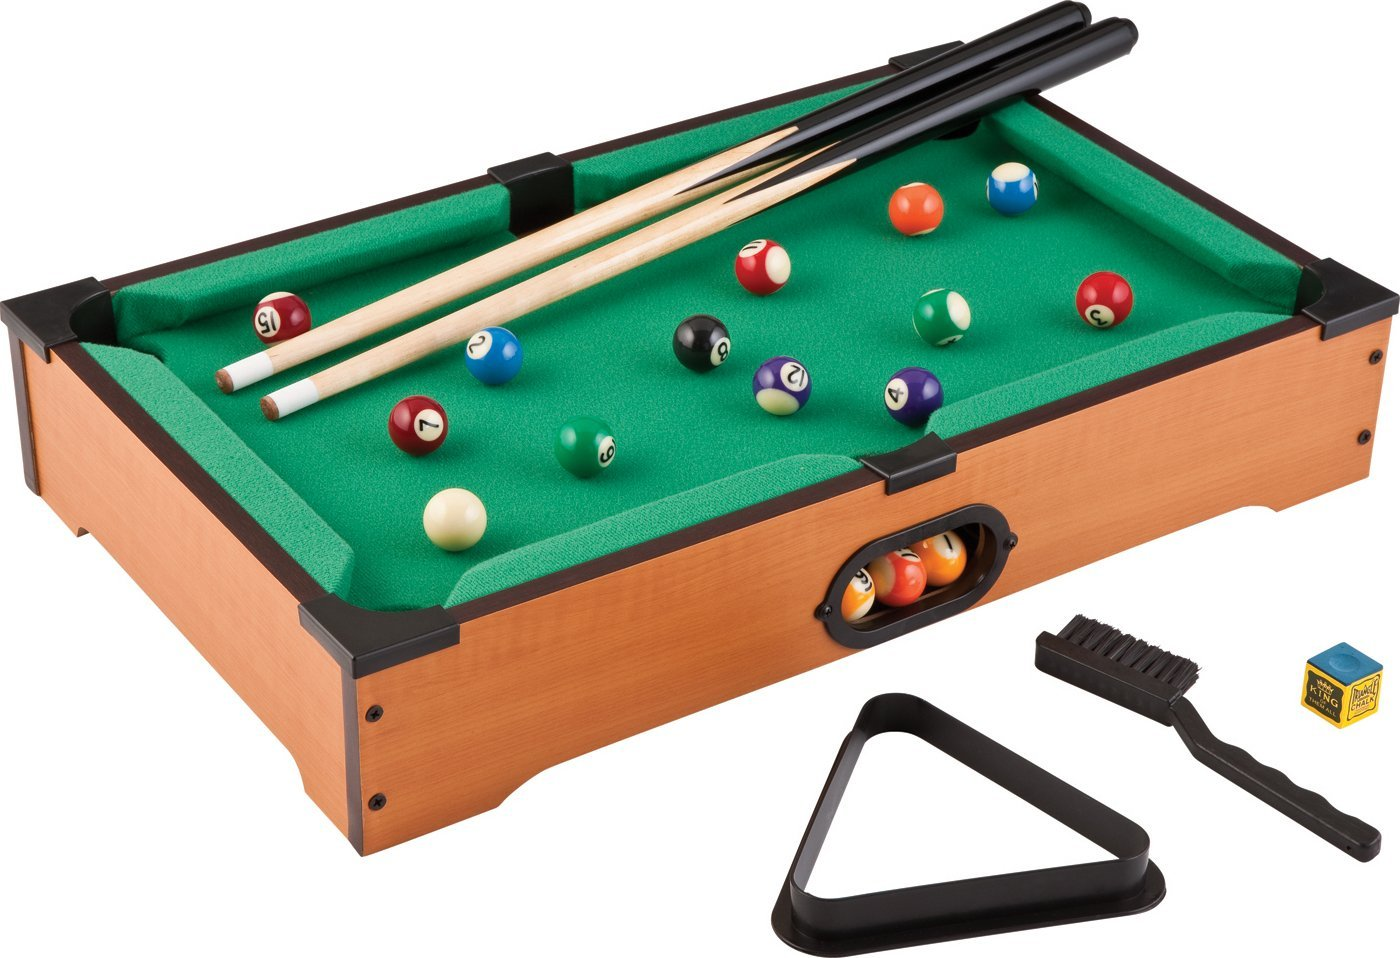 Know more about the billiards game